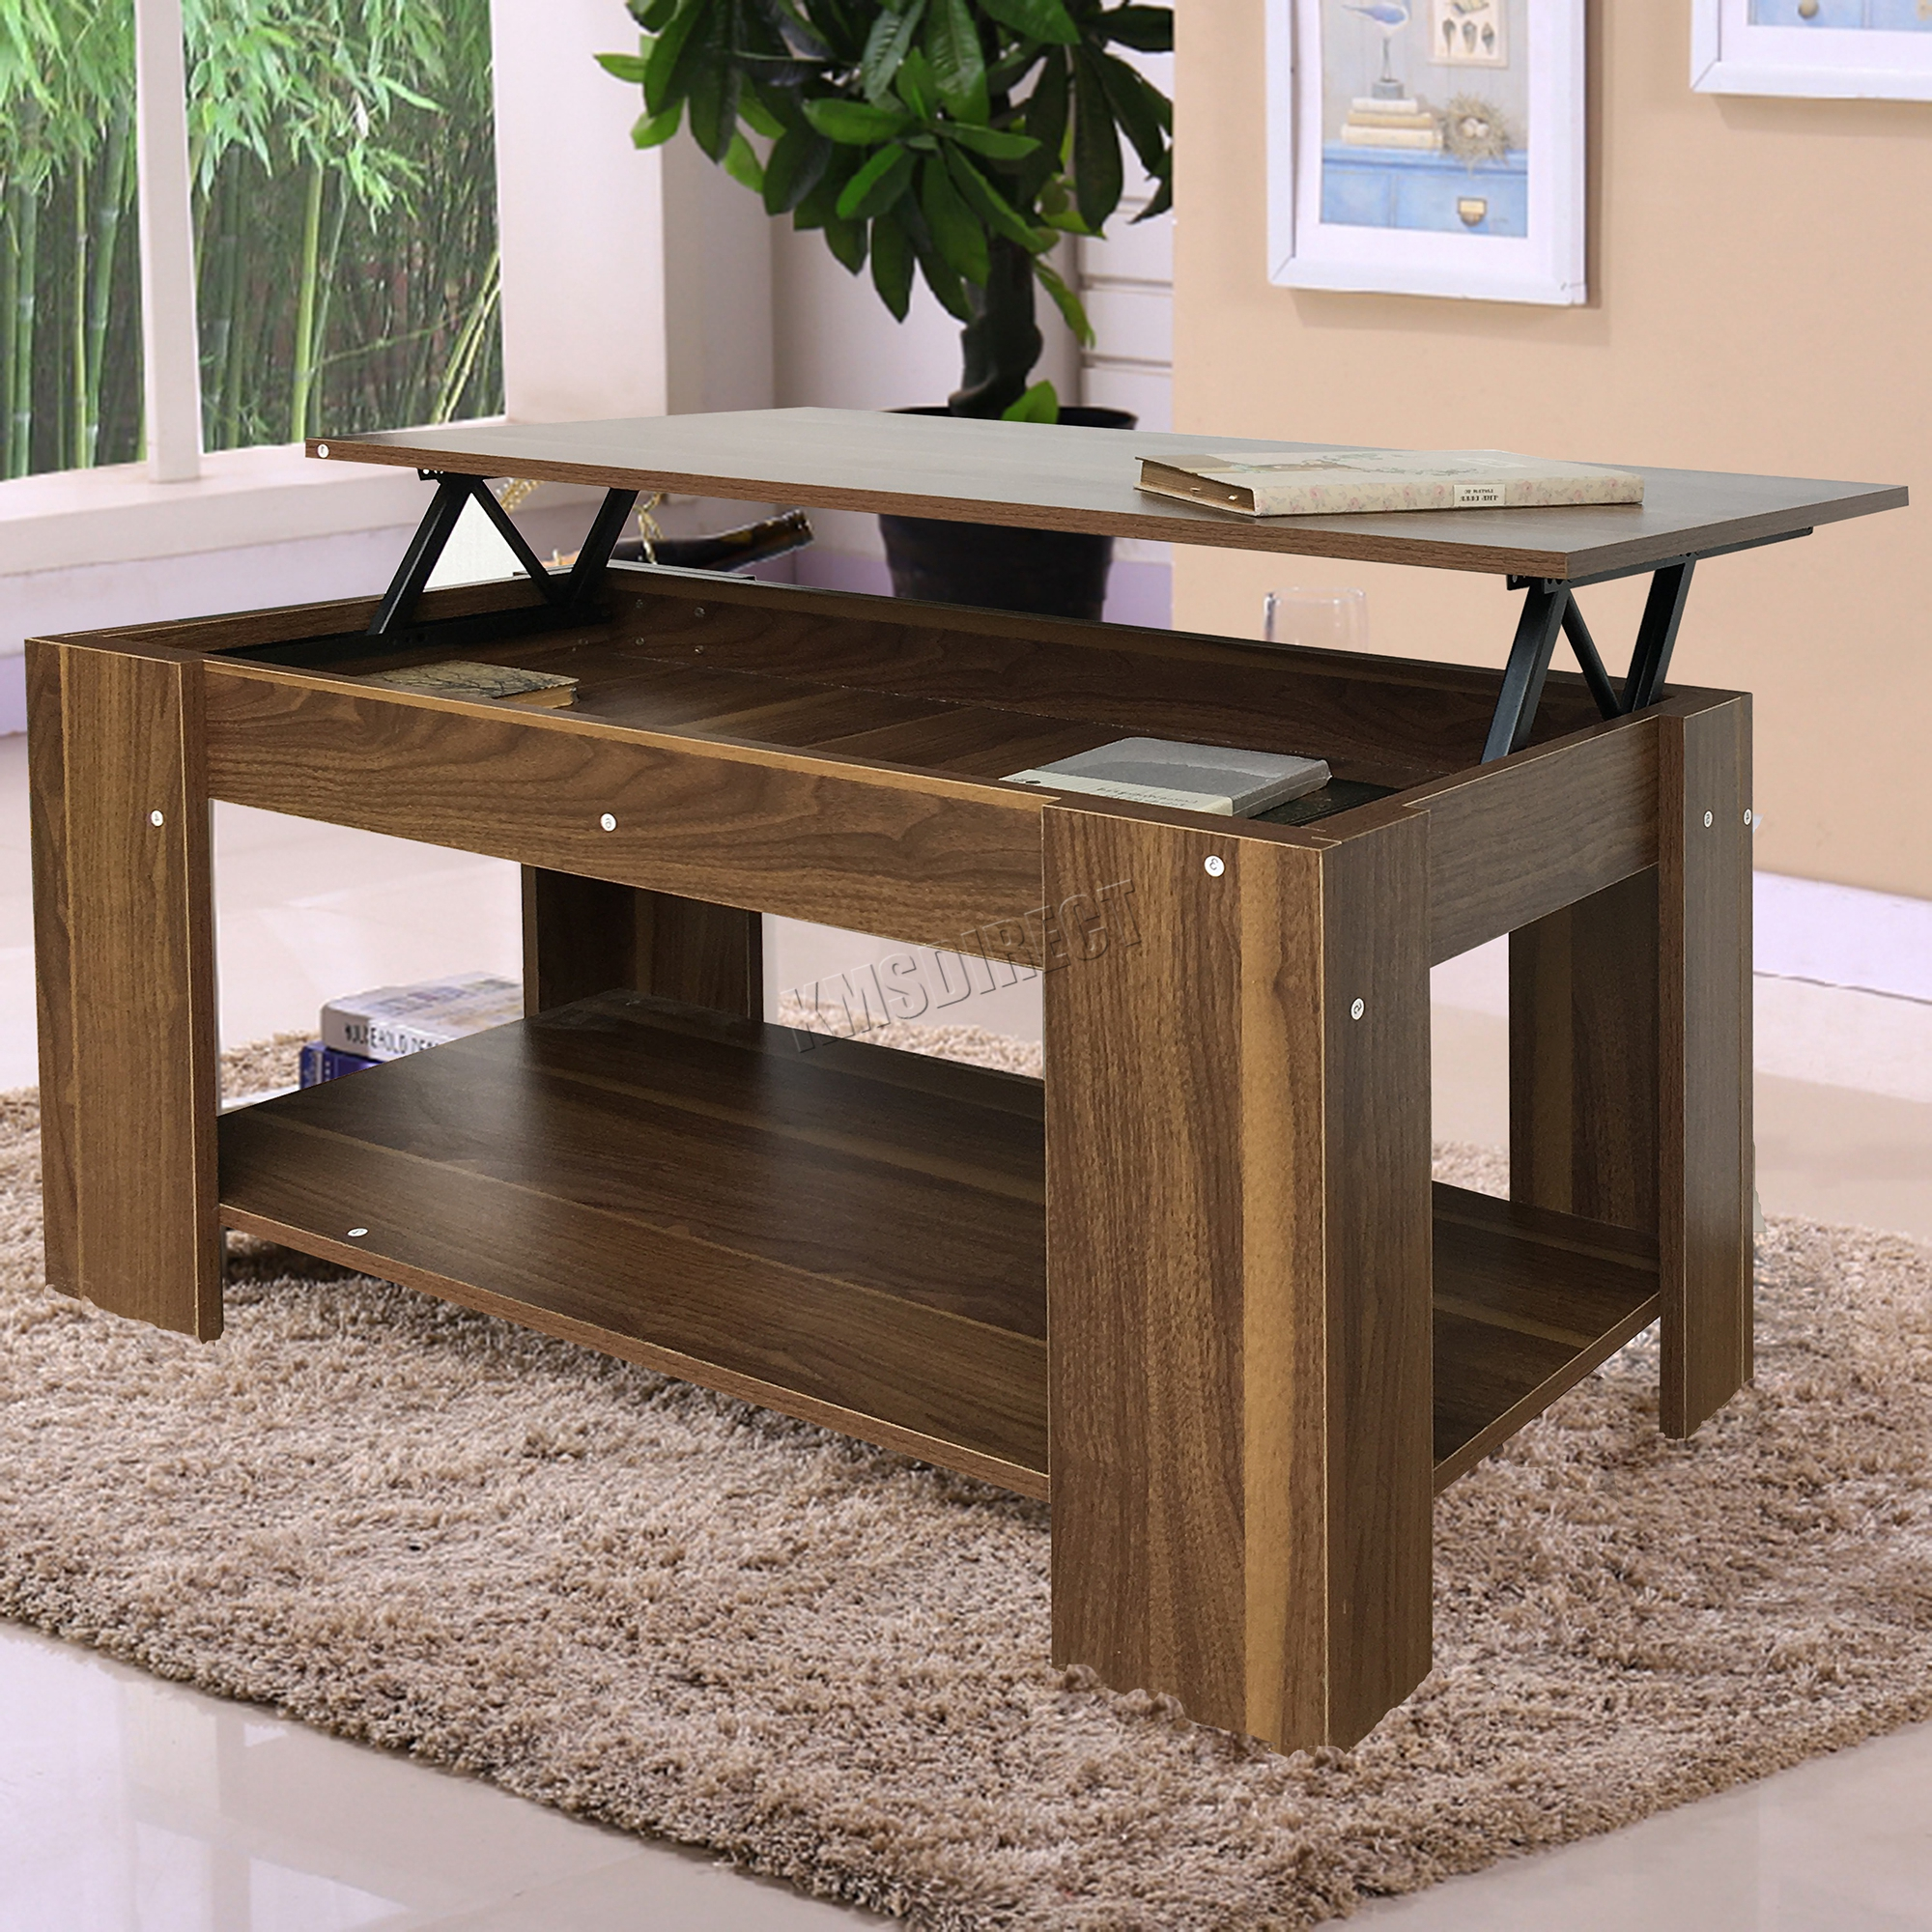 FoxHunter Lift Up Top coffee Table MDF With Storage and Shelf